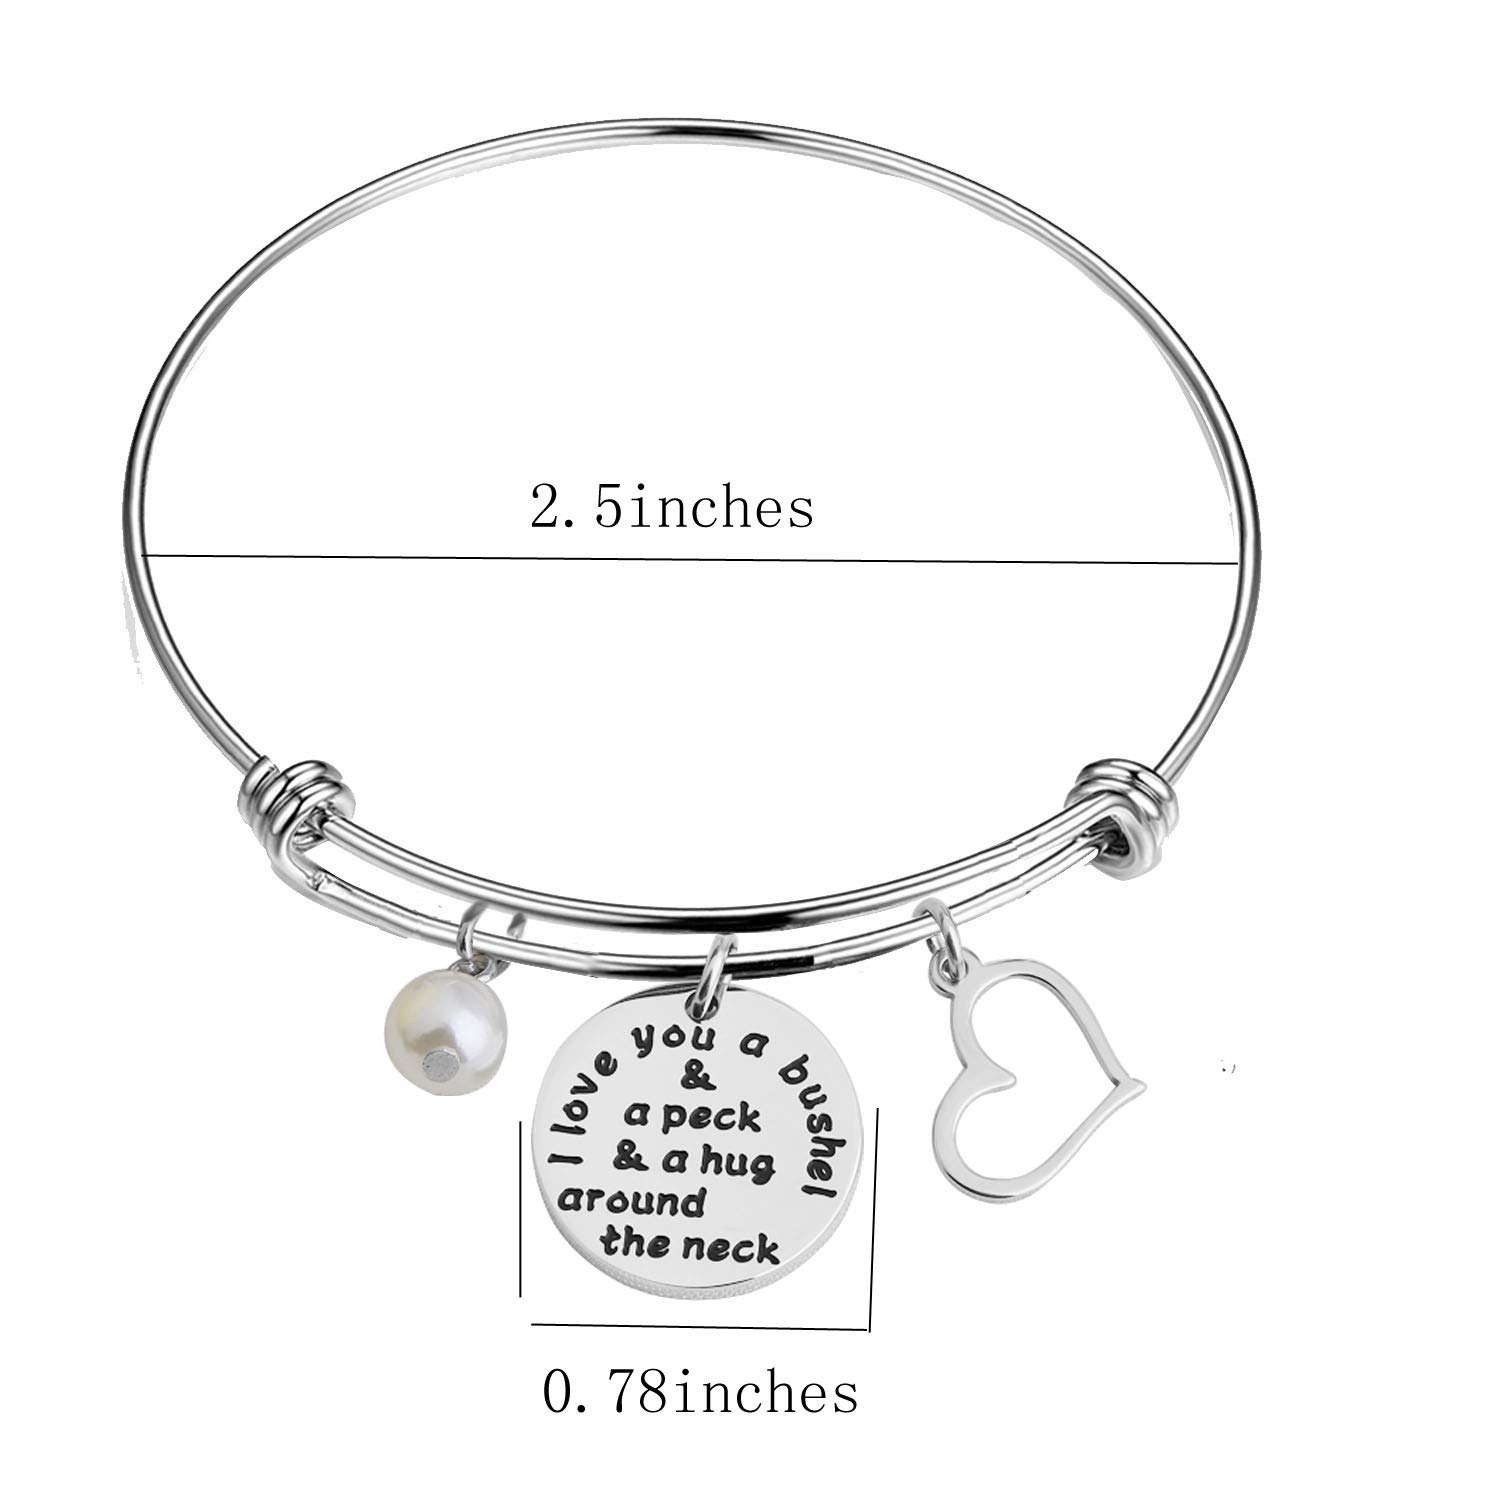 I Love You a Bushel and a Peck Mom Bracelet Grandmother Bracelet Mothers Day Jewelry